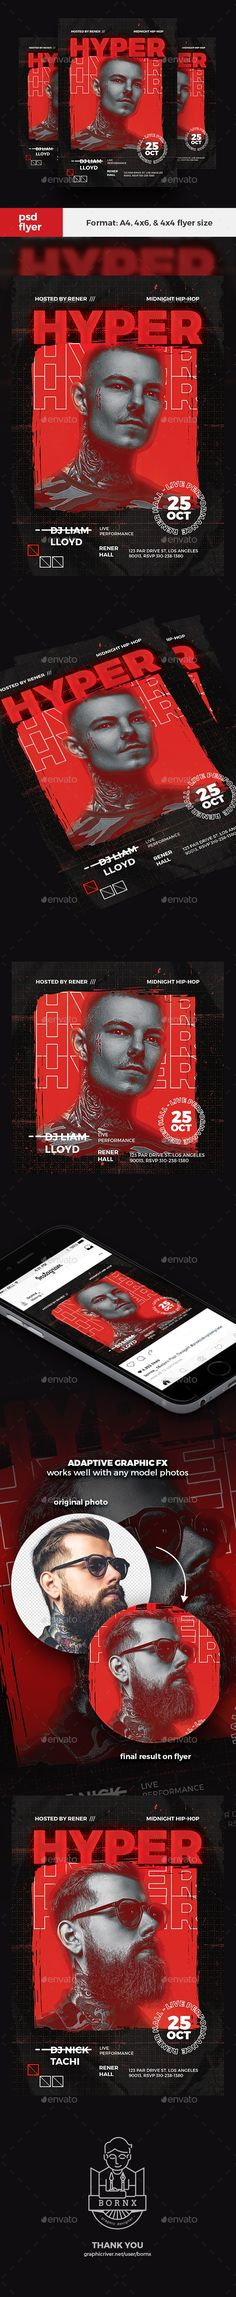 Buy Hip Hop DJ Flyer by bornx on GraphicRiver. DESCRIPTION Hip Hop DJ Flyer – Hip Hop DJ flyer template for Photoshop, perfect to promote your hip hop concert or pa. Psd Flyer Templates, Powerpoint Presentation Templates, Hip Hop Dj, Hip Hop Party, Halloween Flyer, Photoshop, Hip Hop Artists, Partys, Color Effect